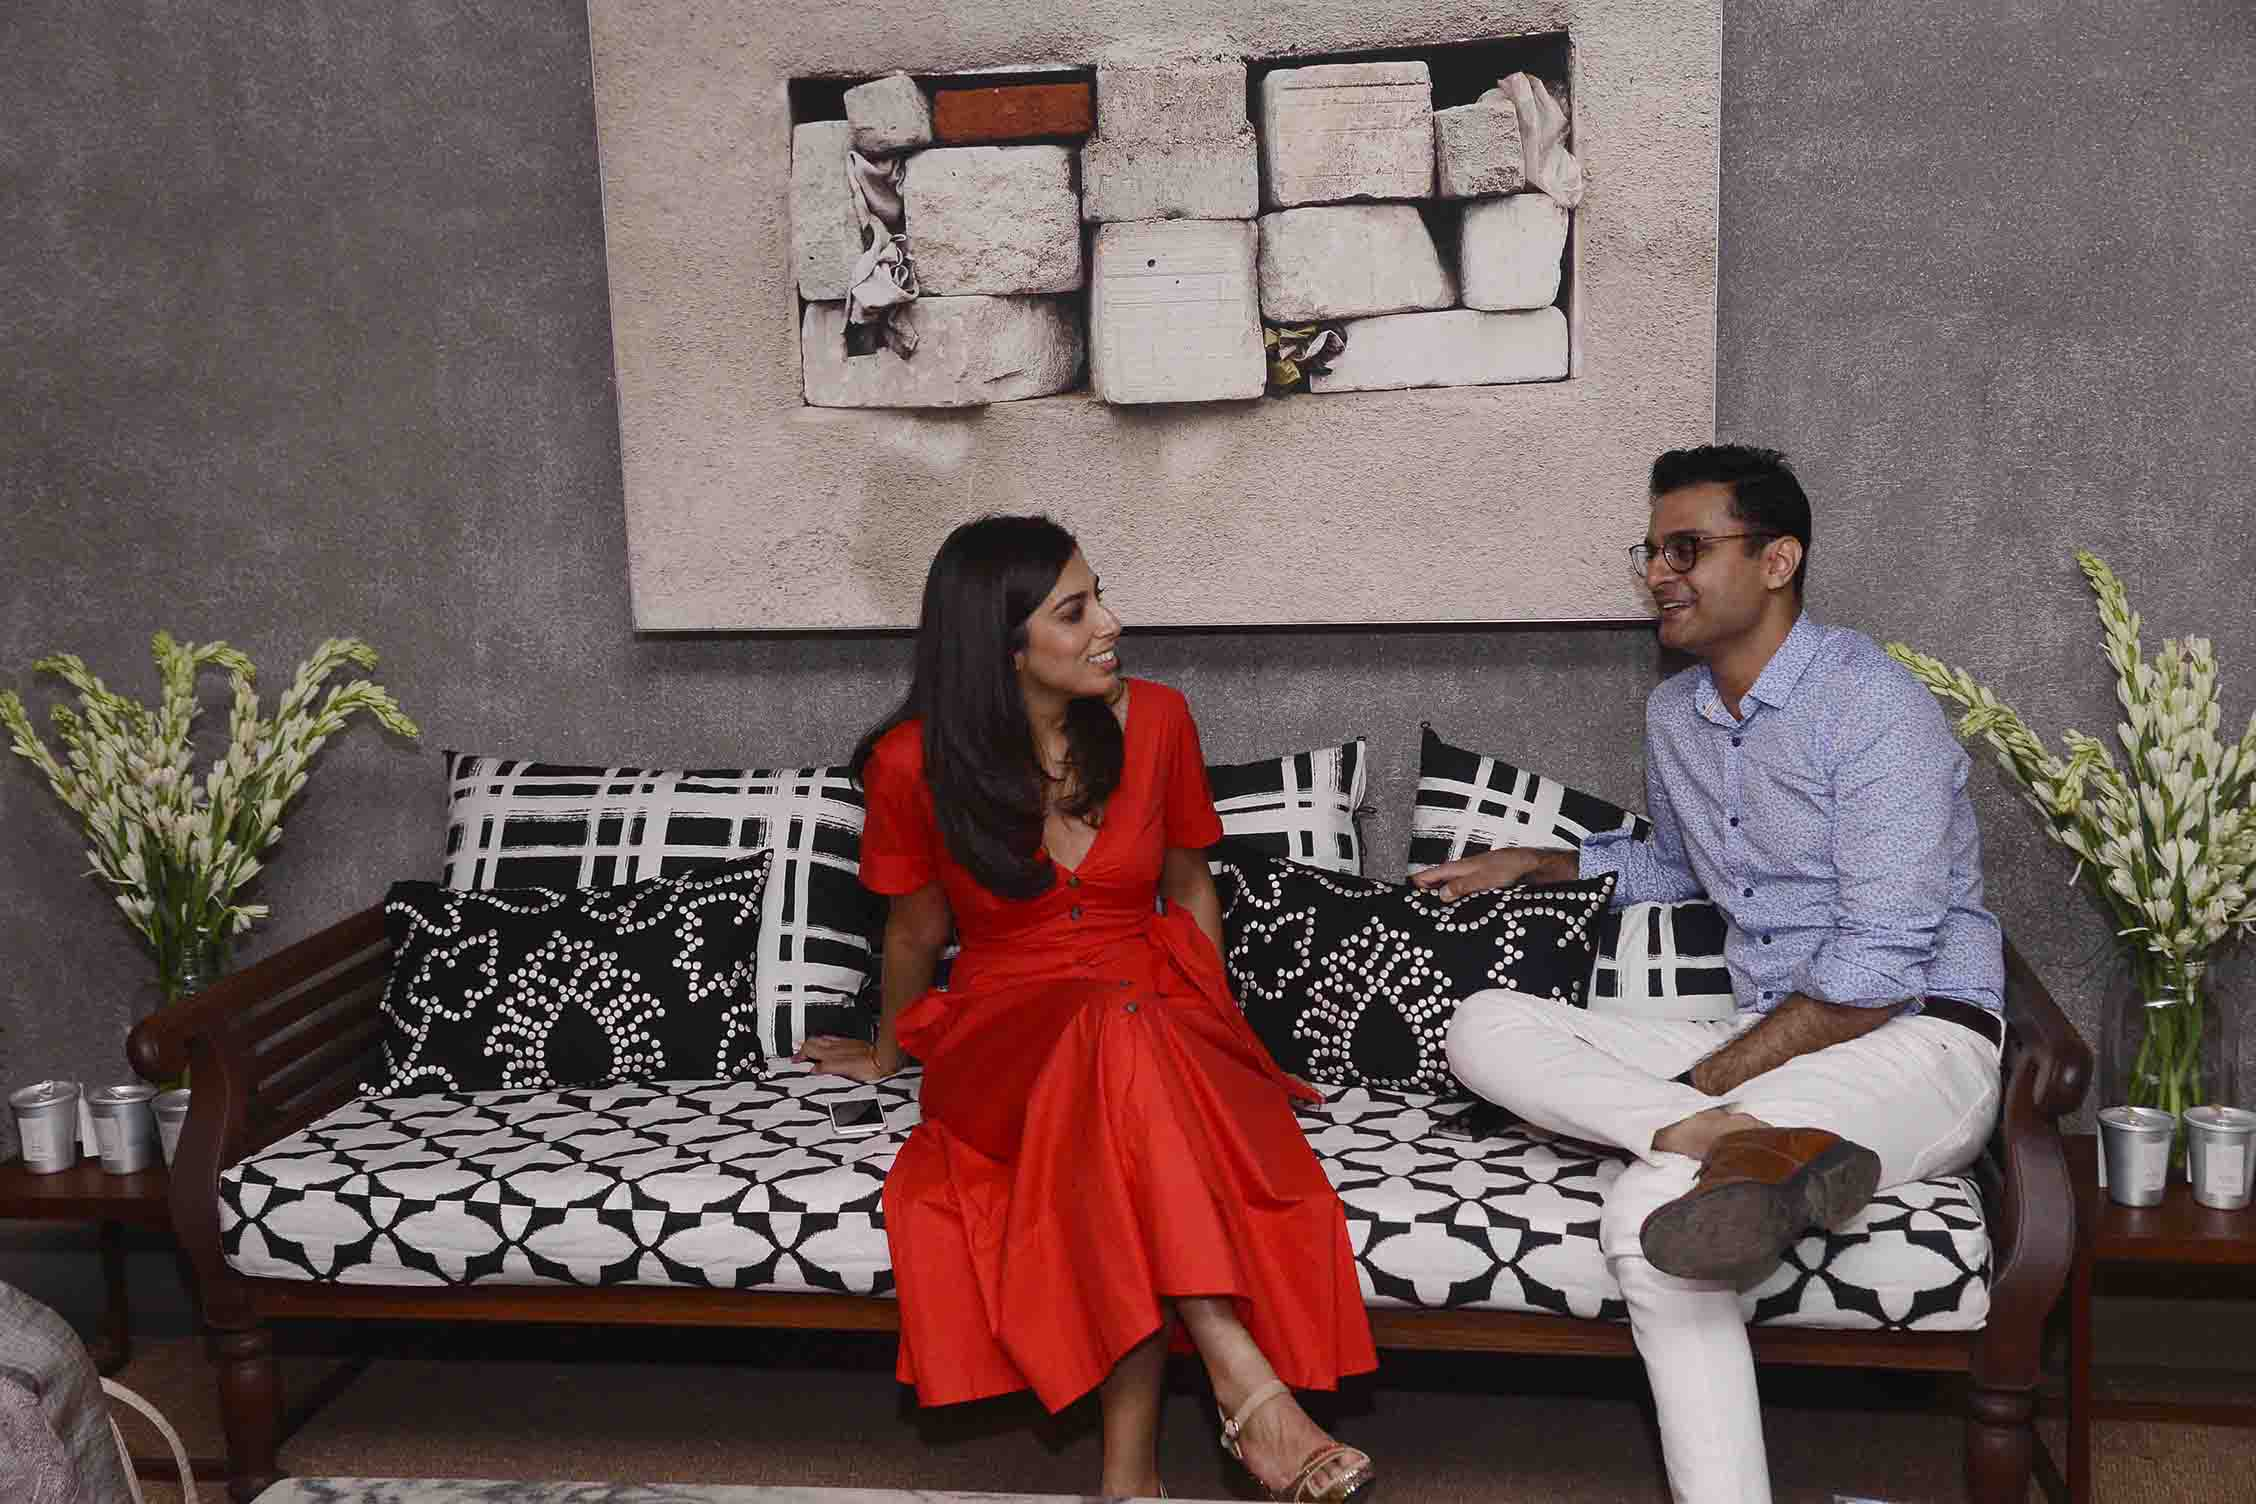 Smita Khanna, Hemant Purohit, The Indian Design Phenomenon, Verve, Design issue, Smita Khanna, Hemant Purohit,